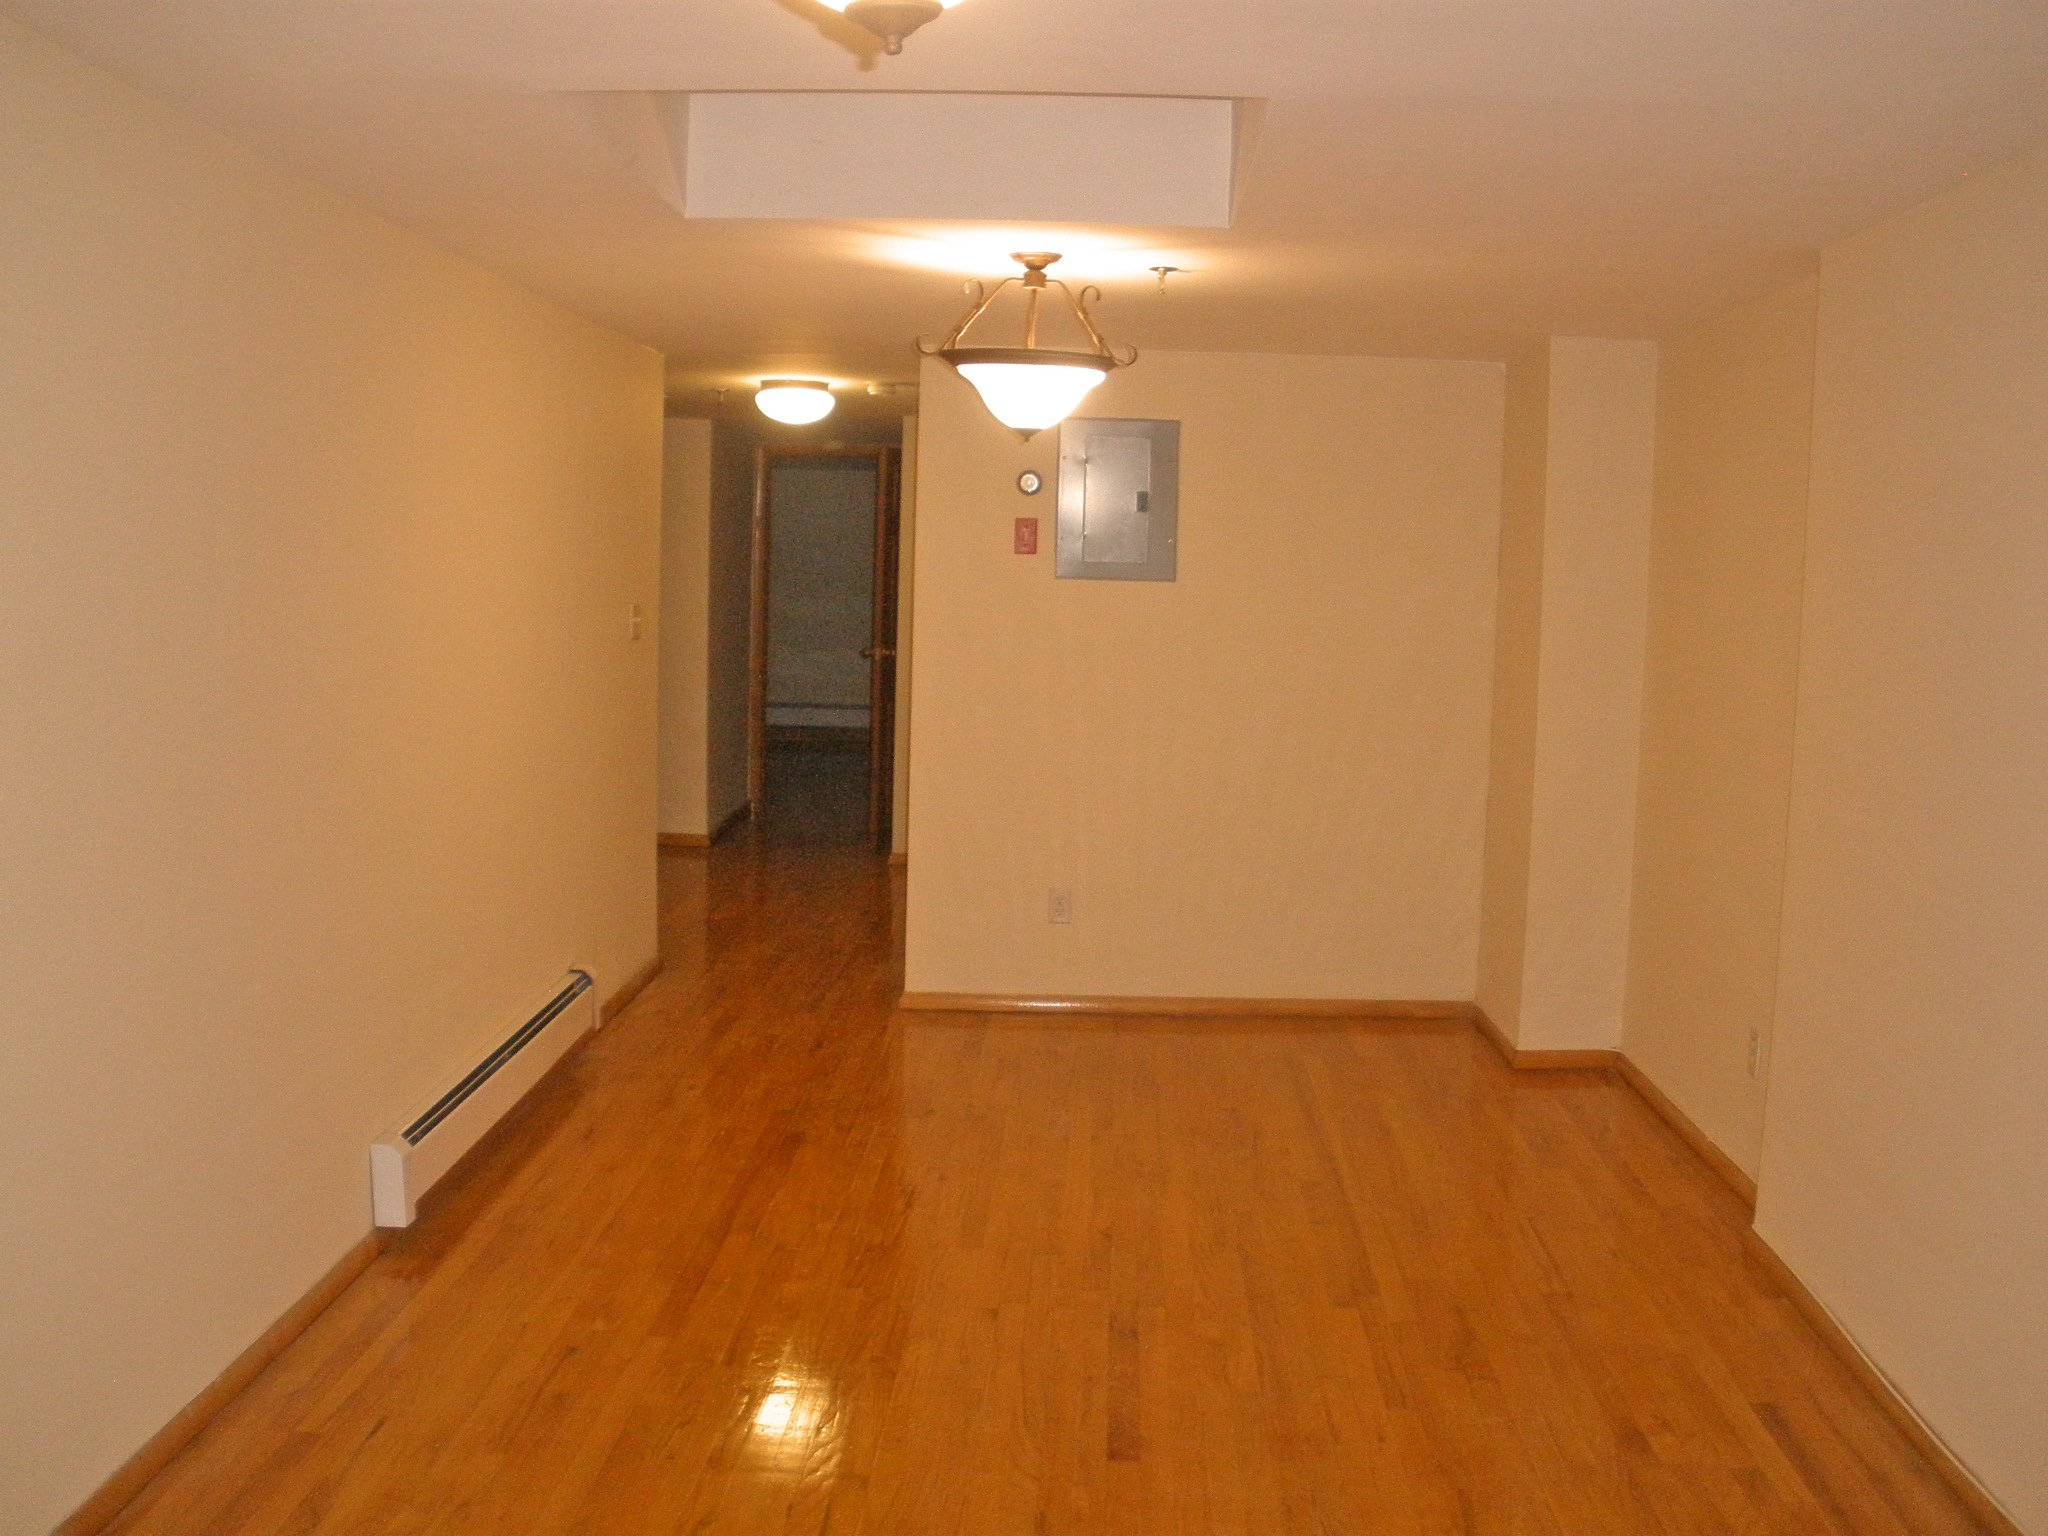 Bedford stuyvesant 1 bedroom apartment for rent brooklyn crg3106 for One bedroom for rent in brooklyn